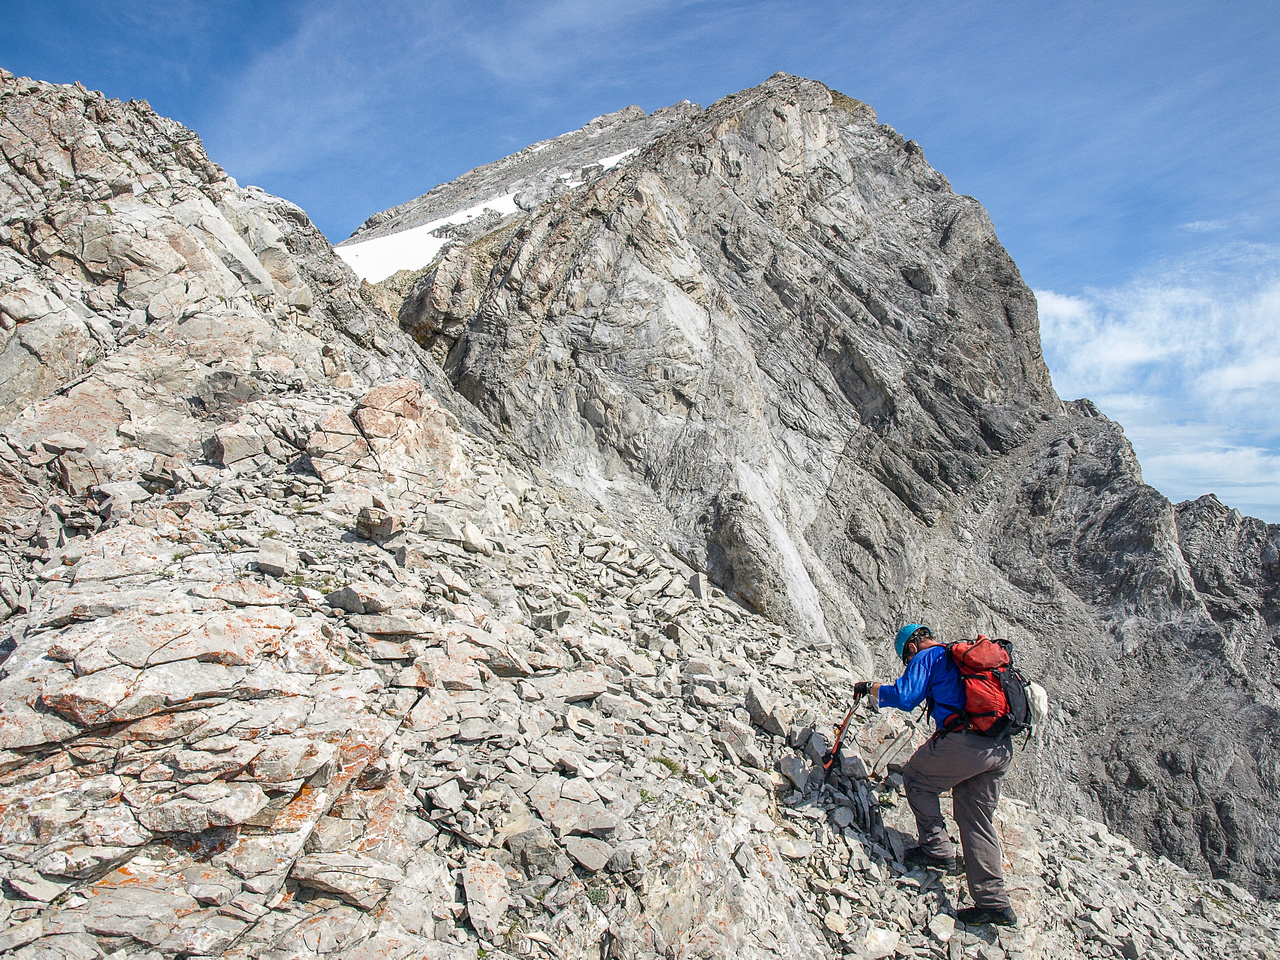 There is still lots of scree but also plenty of exposure up ahead to keep us occupied.